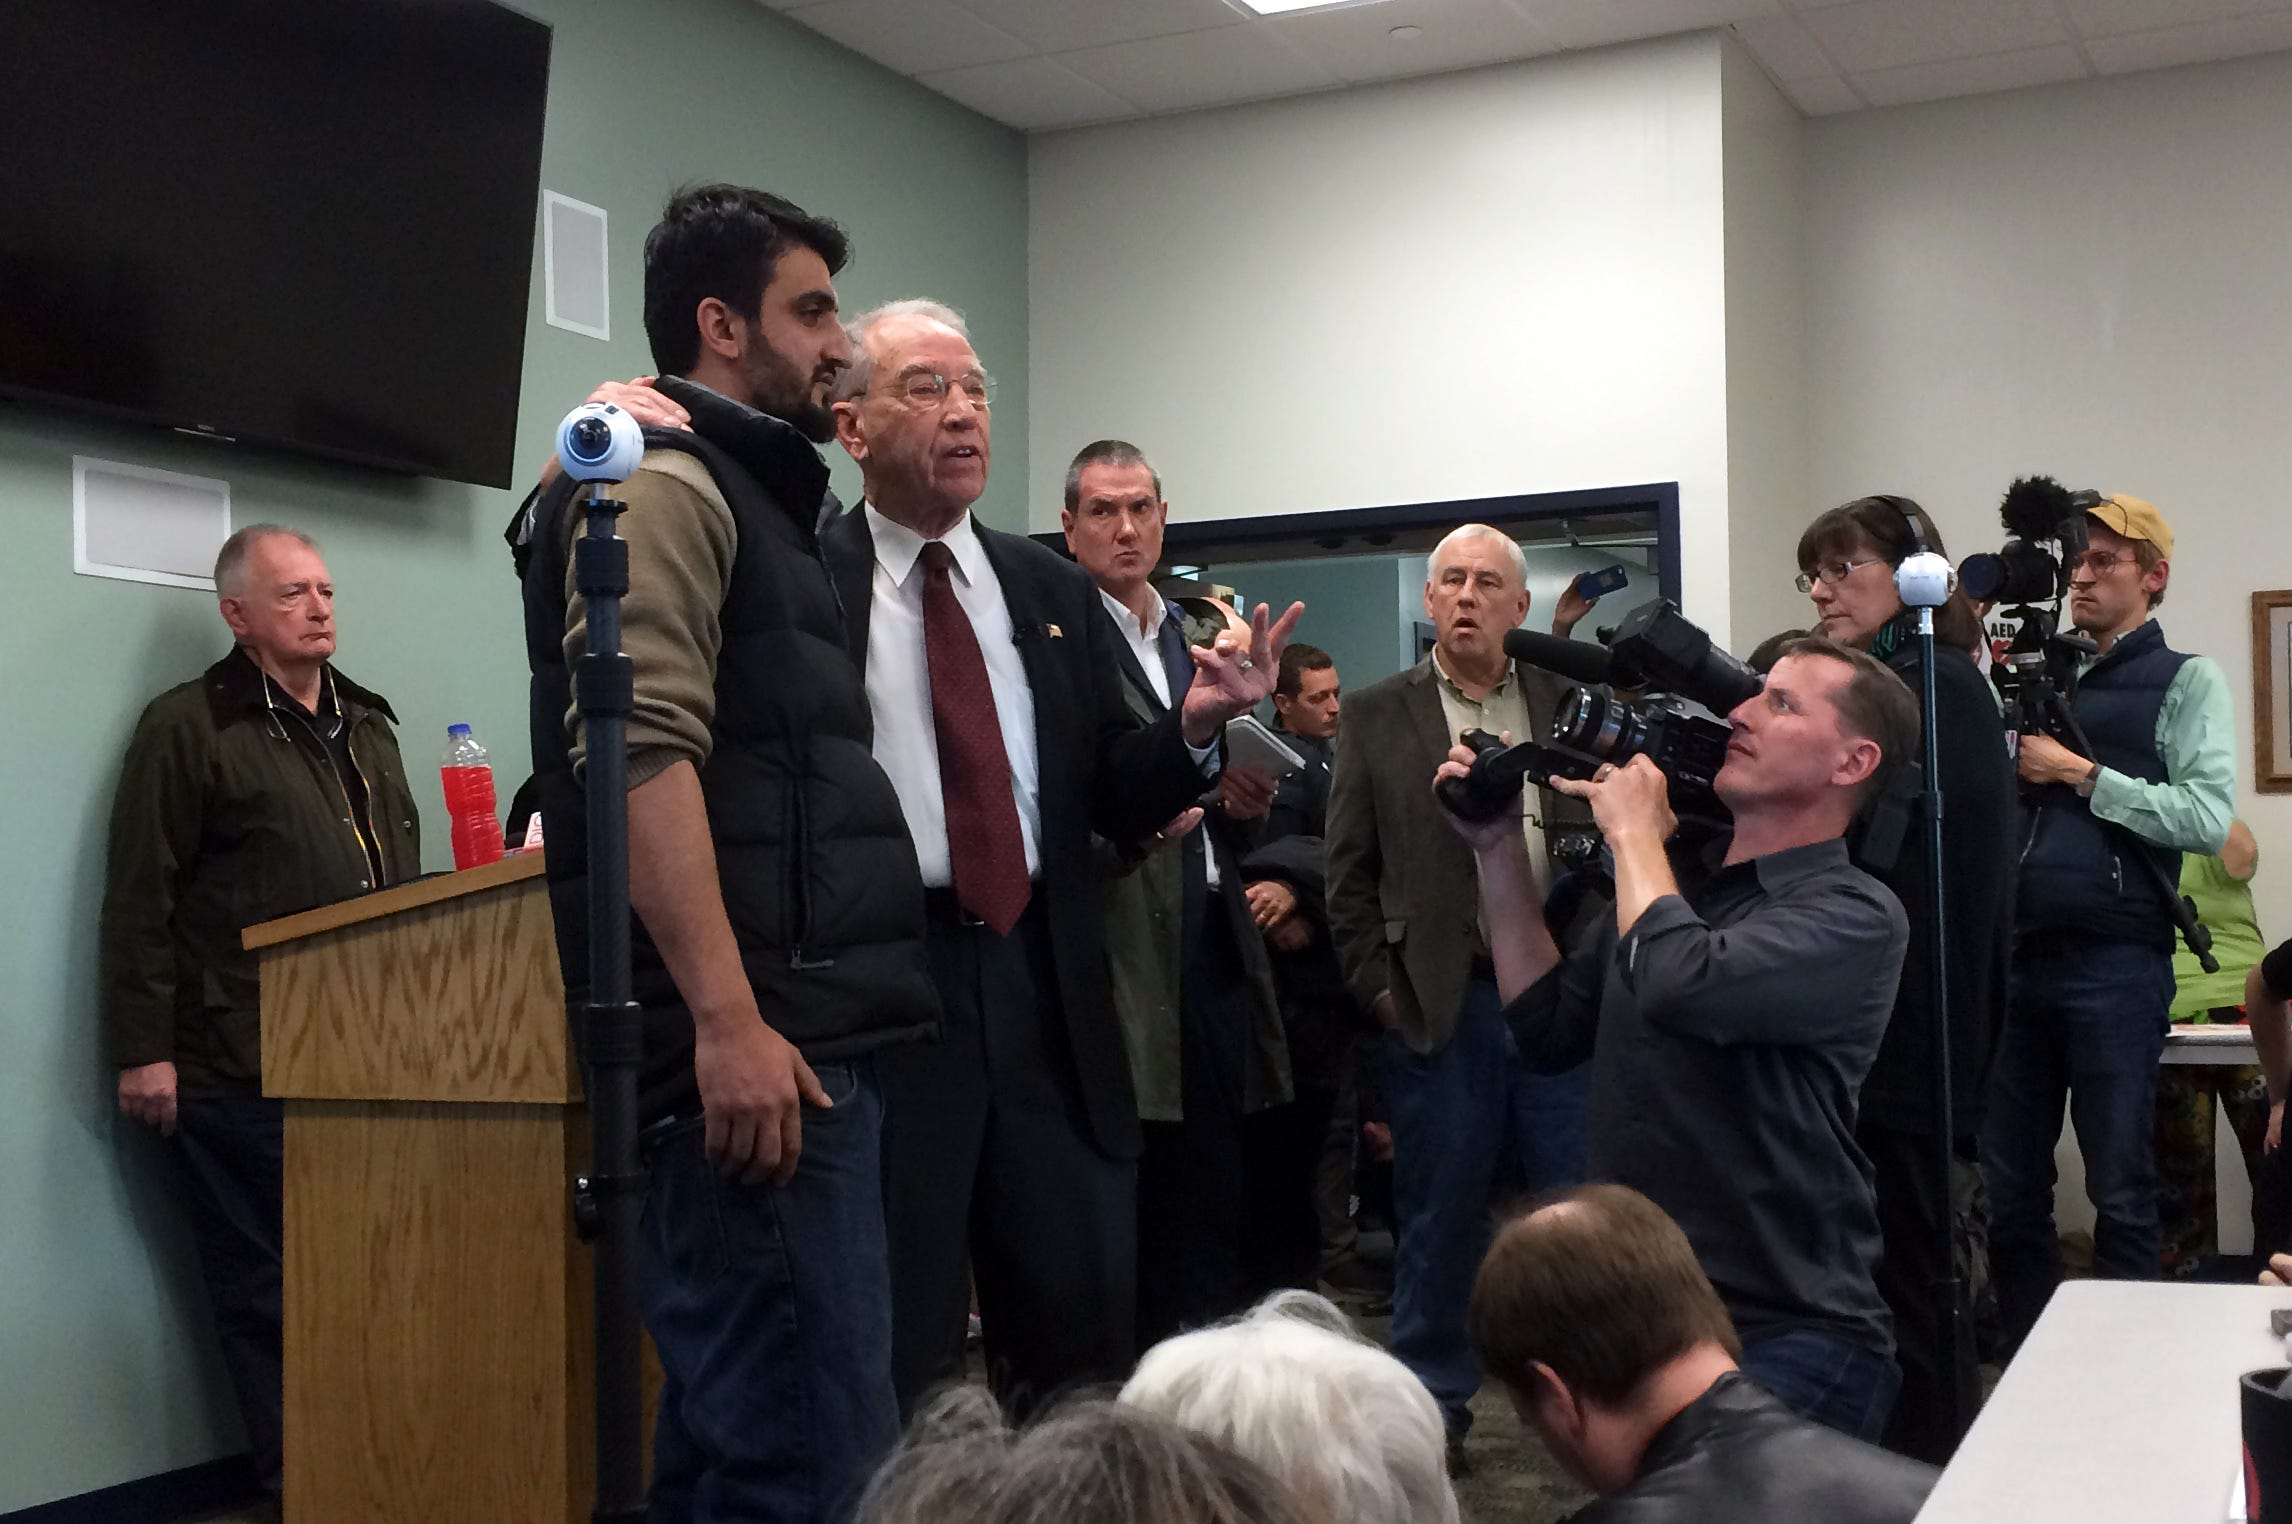 Zalmay Niazy, left, had a chance meeting with U.S. Sen. Chuck Grassley at an Iowa Falls town hall meeting in 2017. When the Iowa Falls Times Citizen reached out to Grassley in 2021 about Niazy's asylum case, a spokesperson said Ethics Committee rules prohibited him from intervening.